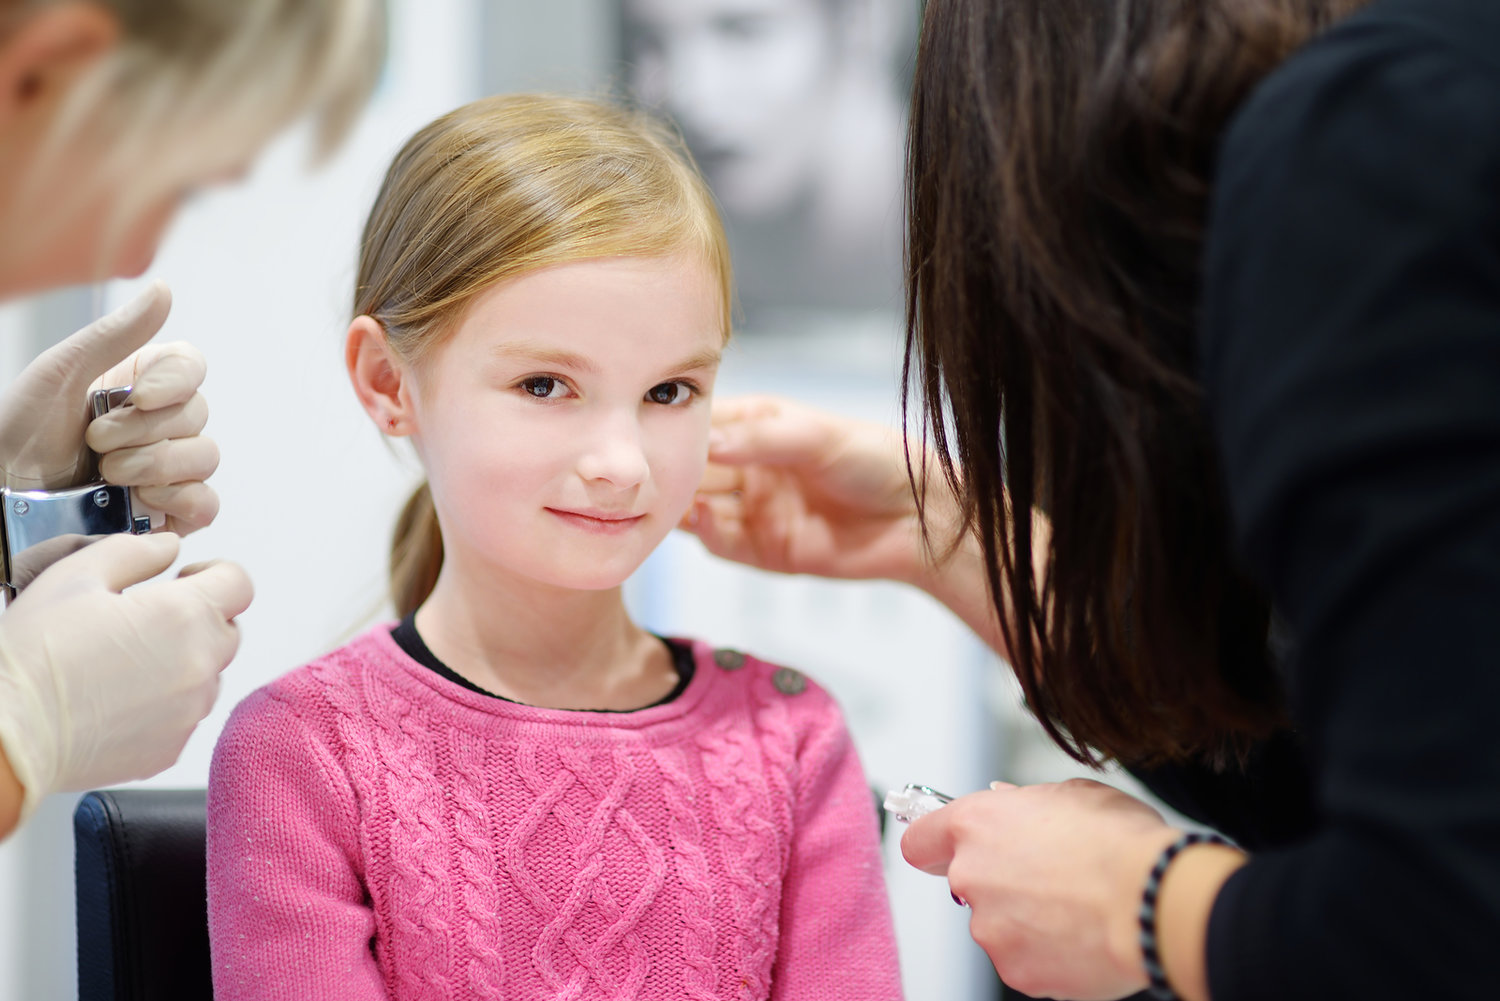 Medical Grade Ear Piercings Just Kids Pediatrics